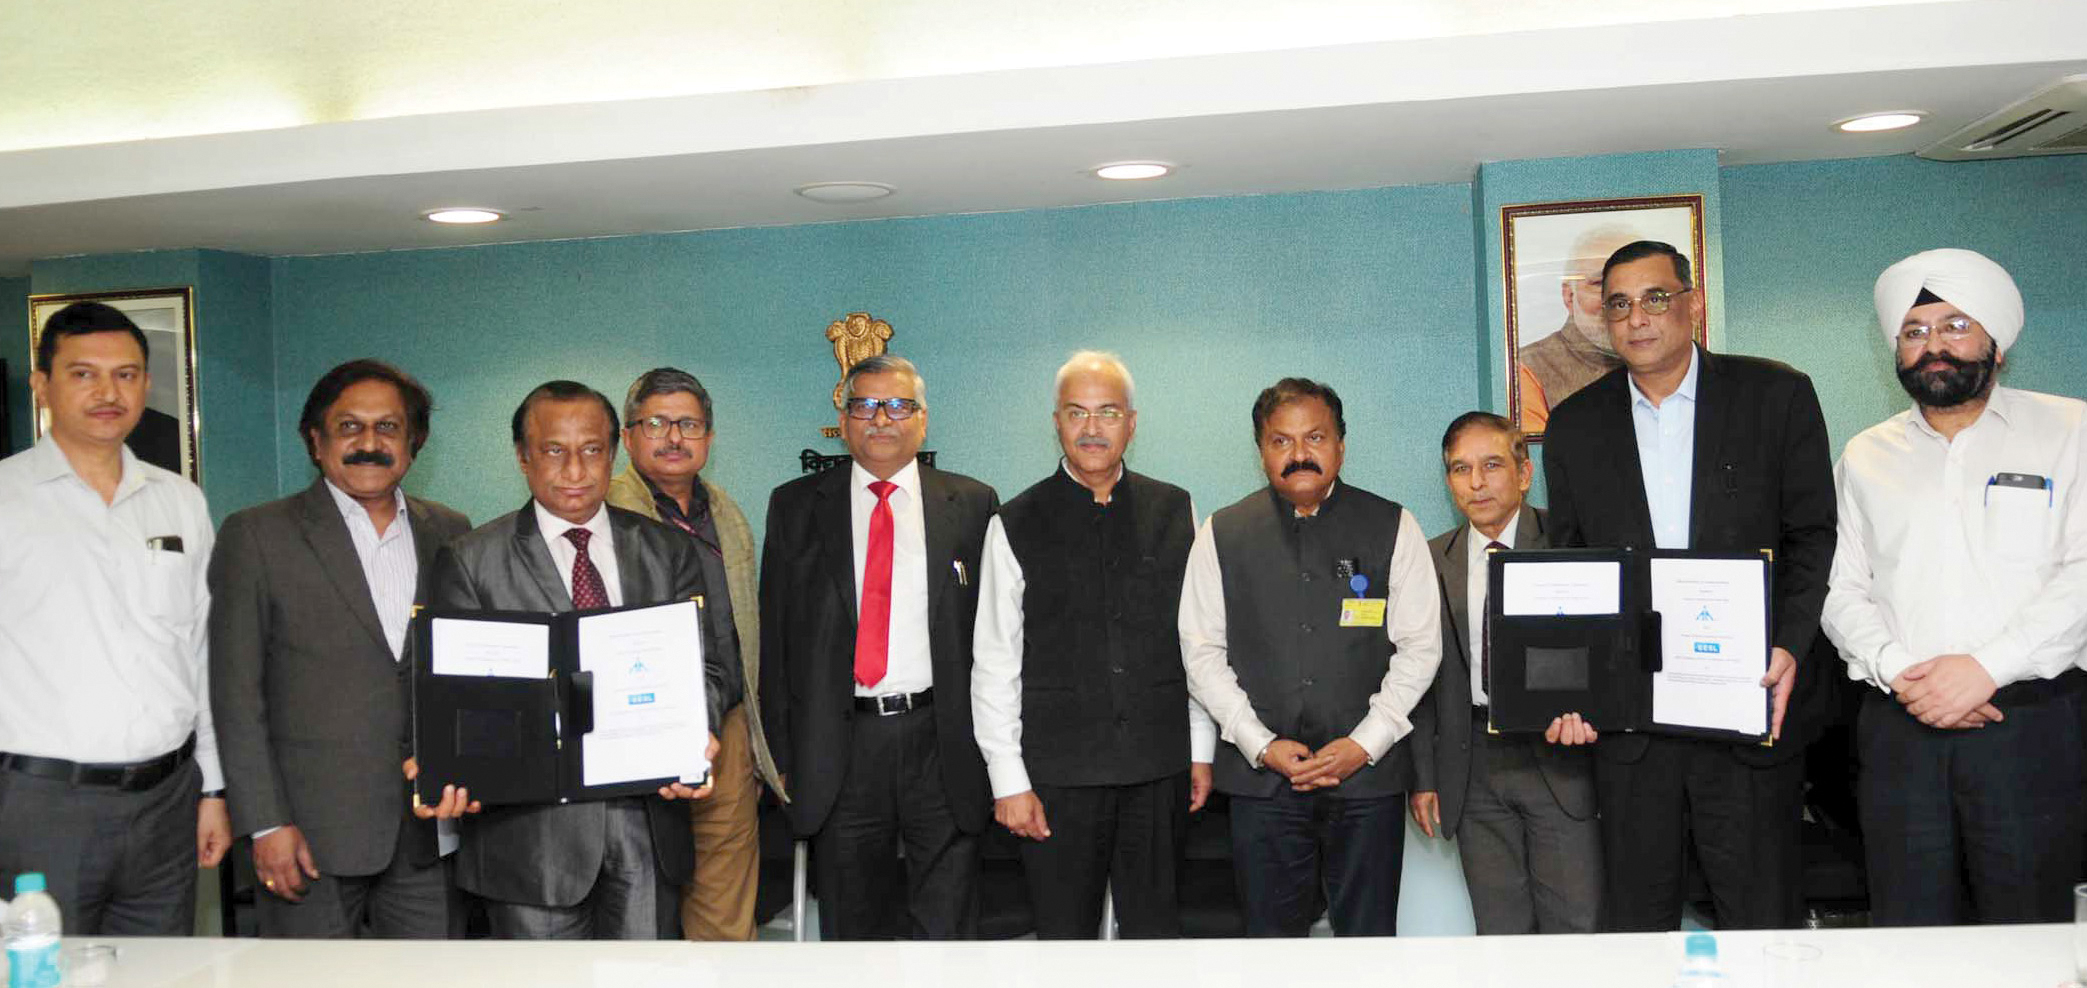 Ajay Kumar Bhalla, Secretary, Ministry of Power (centre); and Guruprasad Mohapatra, Chairman, Airports Authority of India (AAI) (fourth from right), at an MoU signing ceremony for installing energy-efficient LED lights at airports, buildings and facilities owned by AAI, in New Delhi